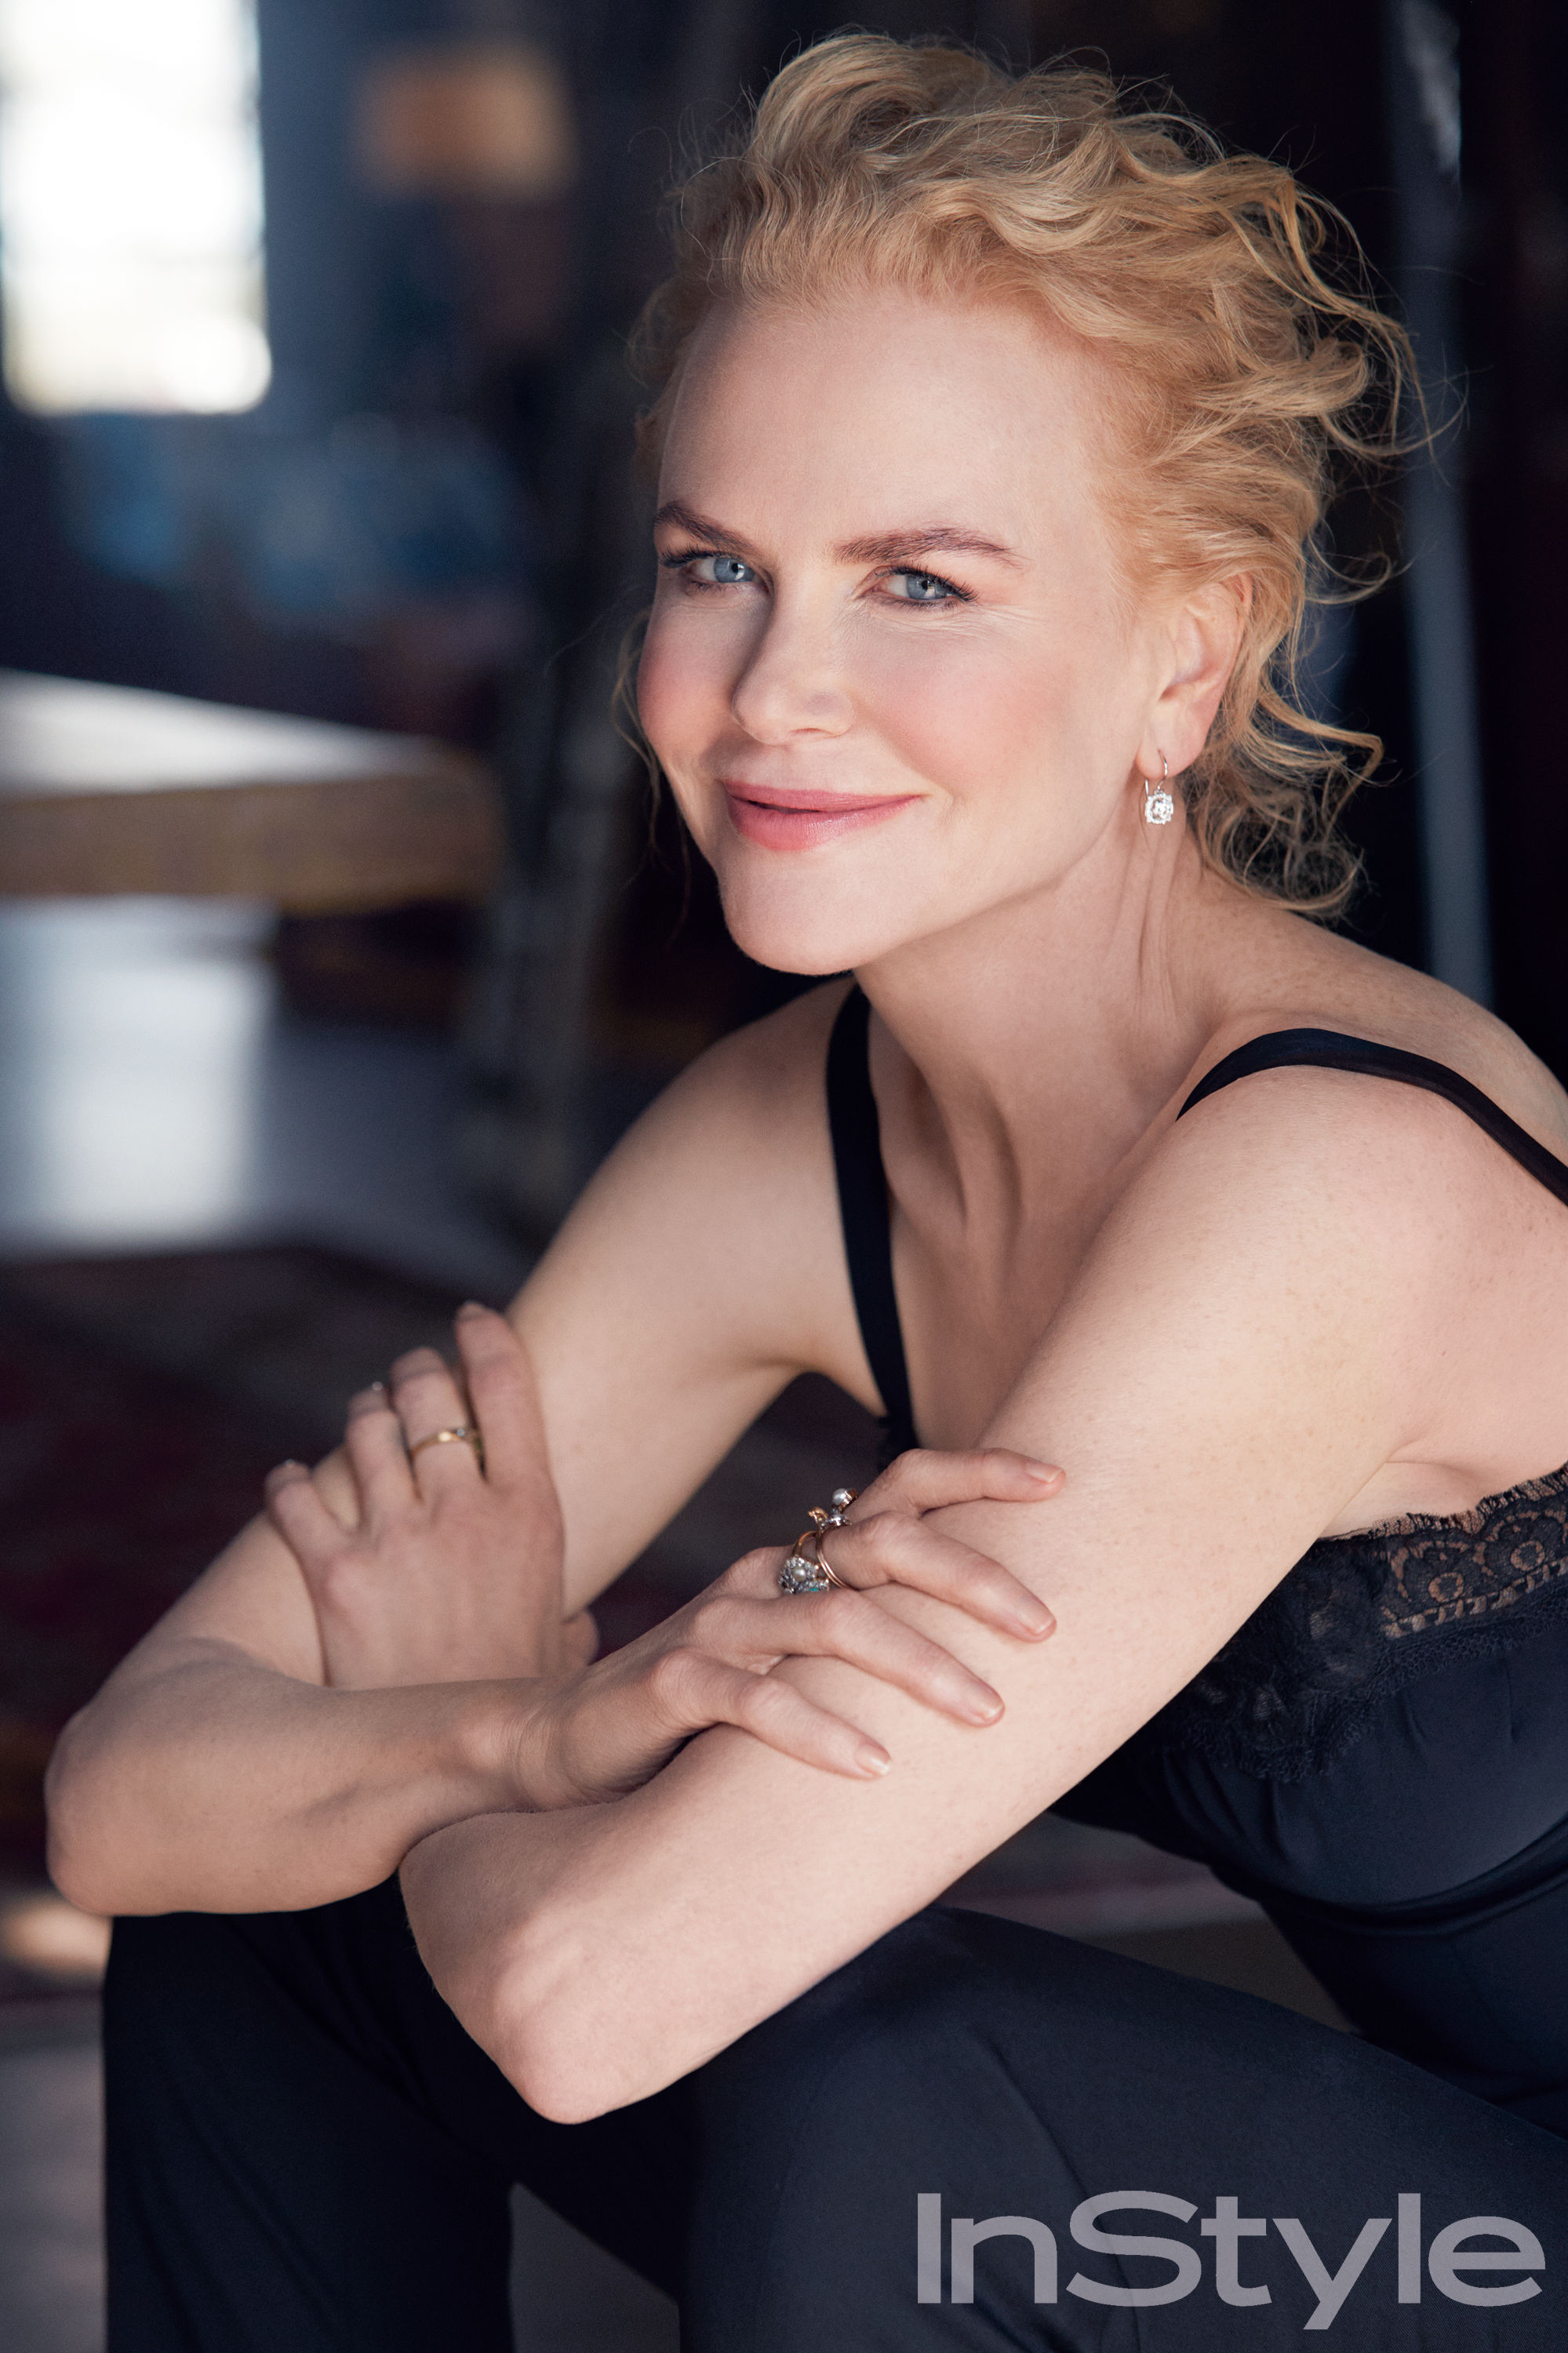 Nicole Kidman Isn't into Wrinkles, but Thinks Everything Else Gets Better With Age